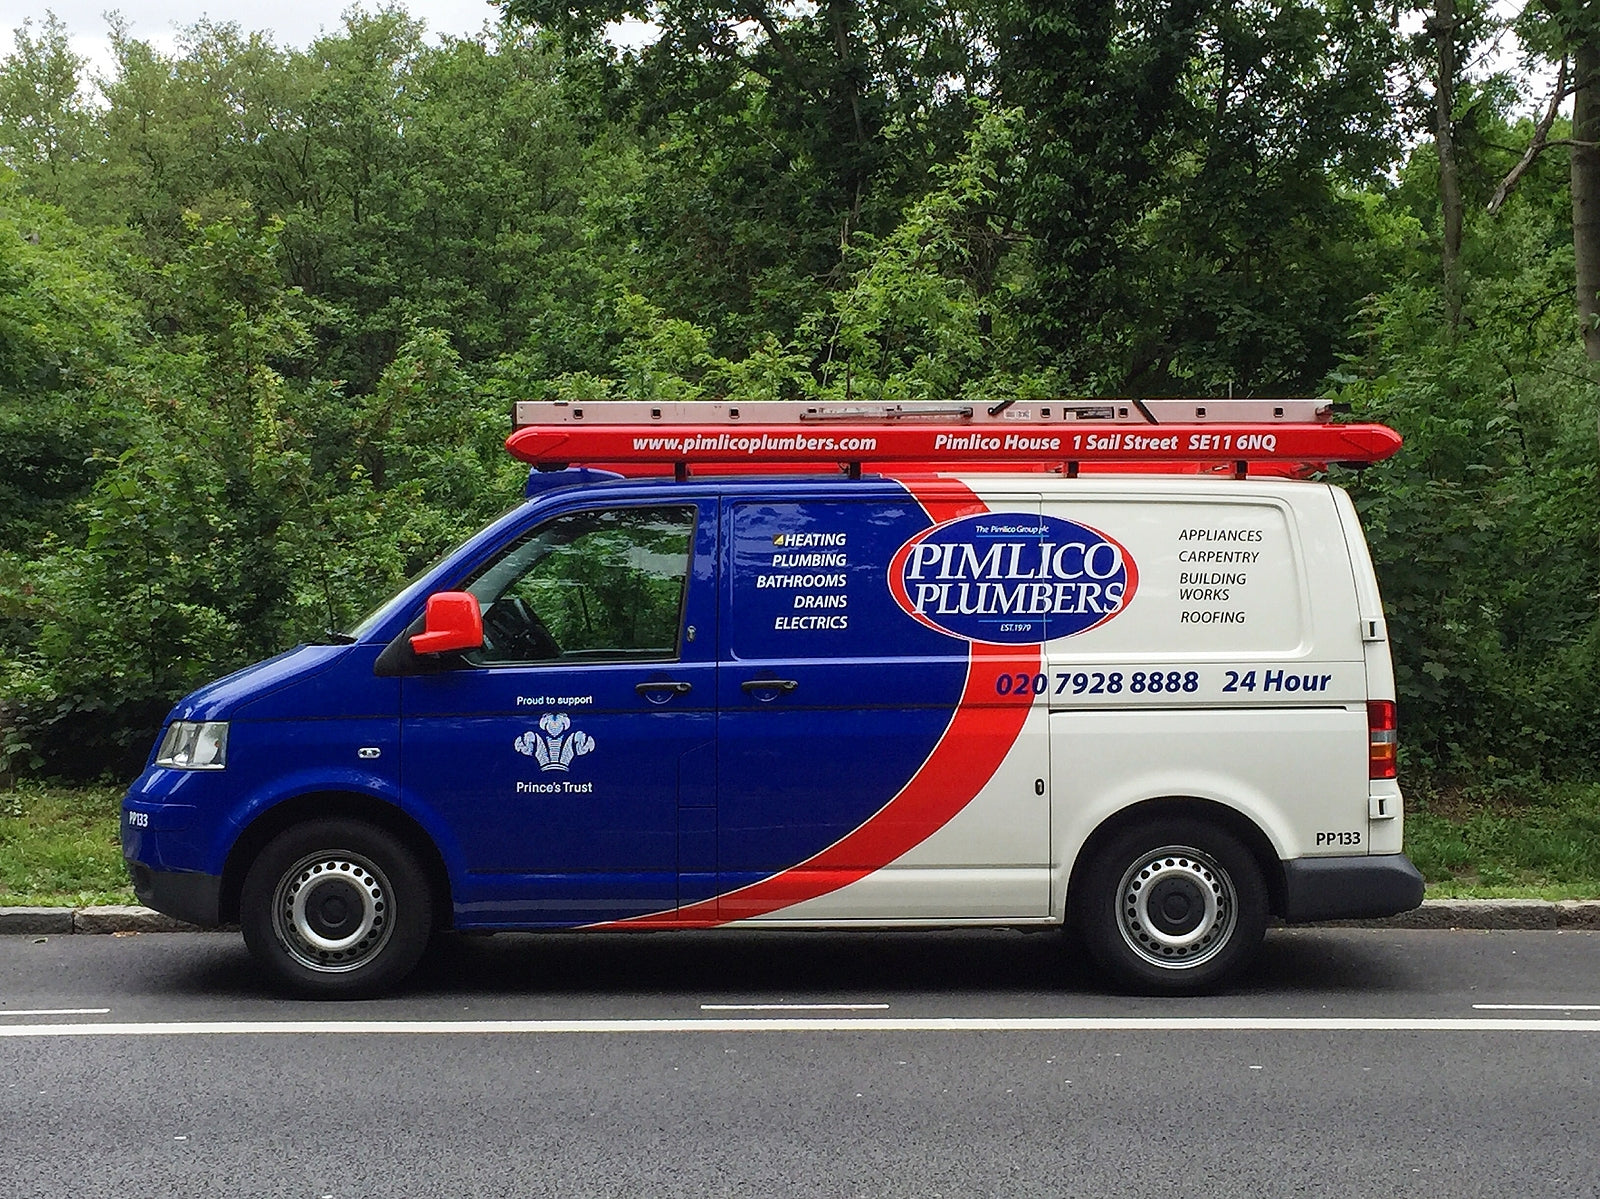 [UK] Pimlico Plumbers fires staff refusing to return to work